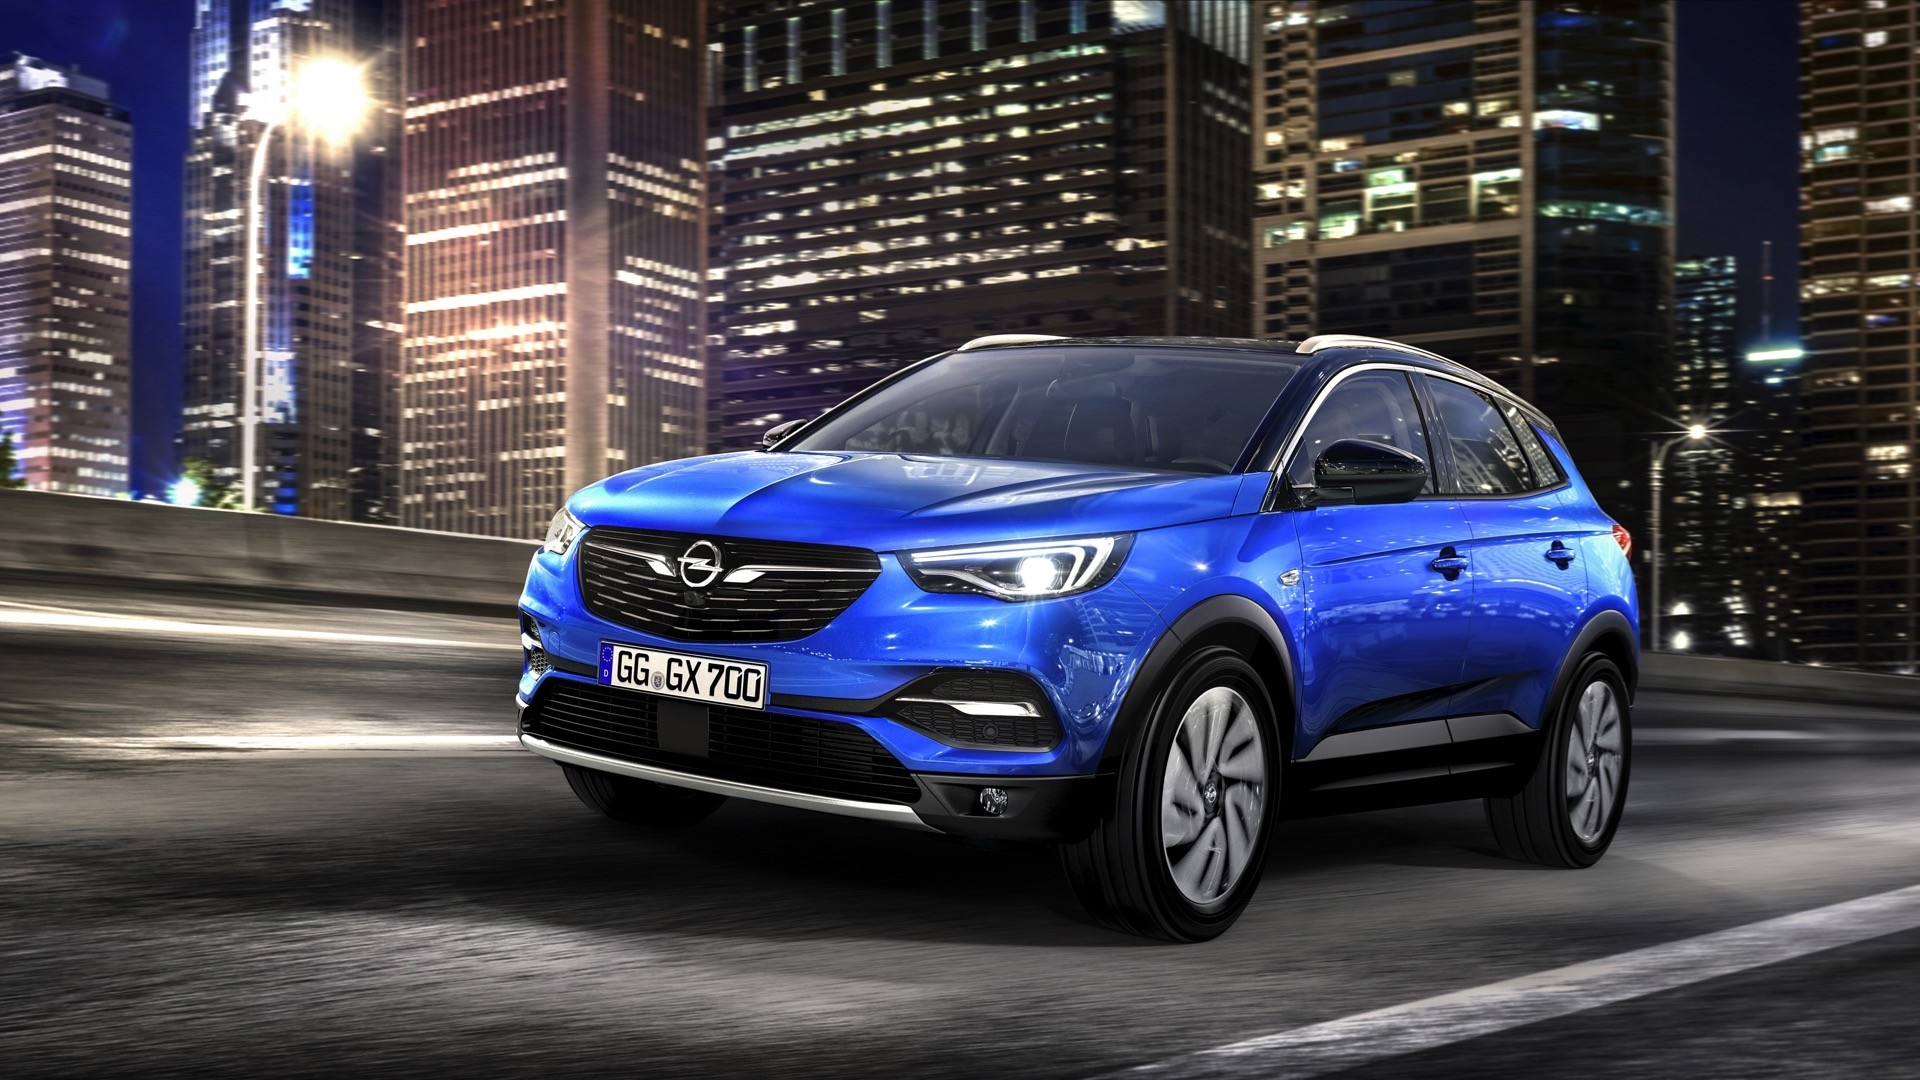 Vauxhall Grandland X Priced Higher Than Main Rival Nissan Qashqai Autoevolution